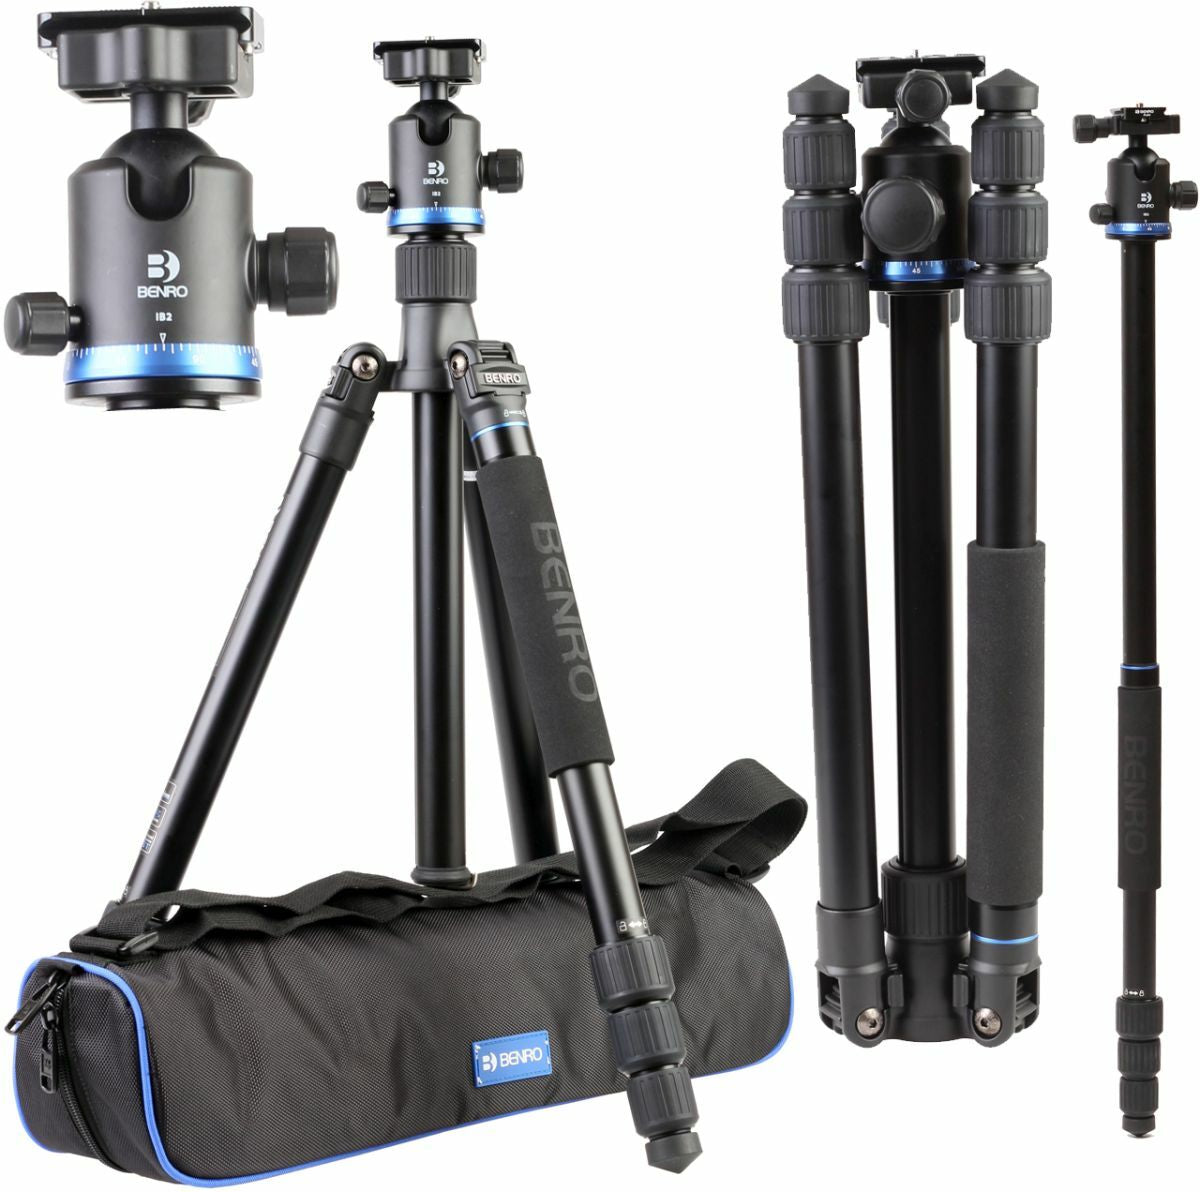 Benro iFoto Series 1 Carbon Fibre Tripod Kit With Ball head